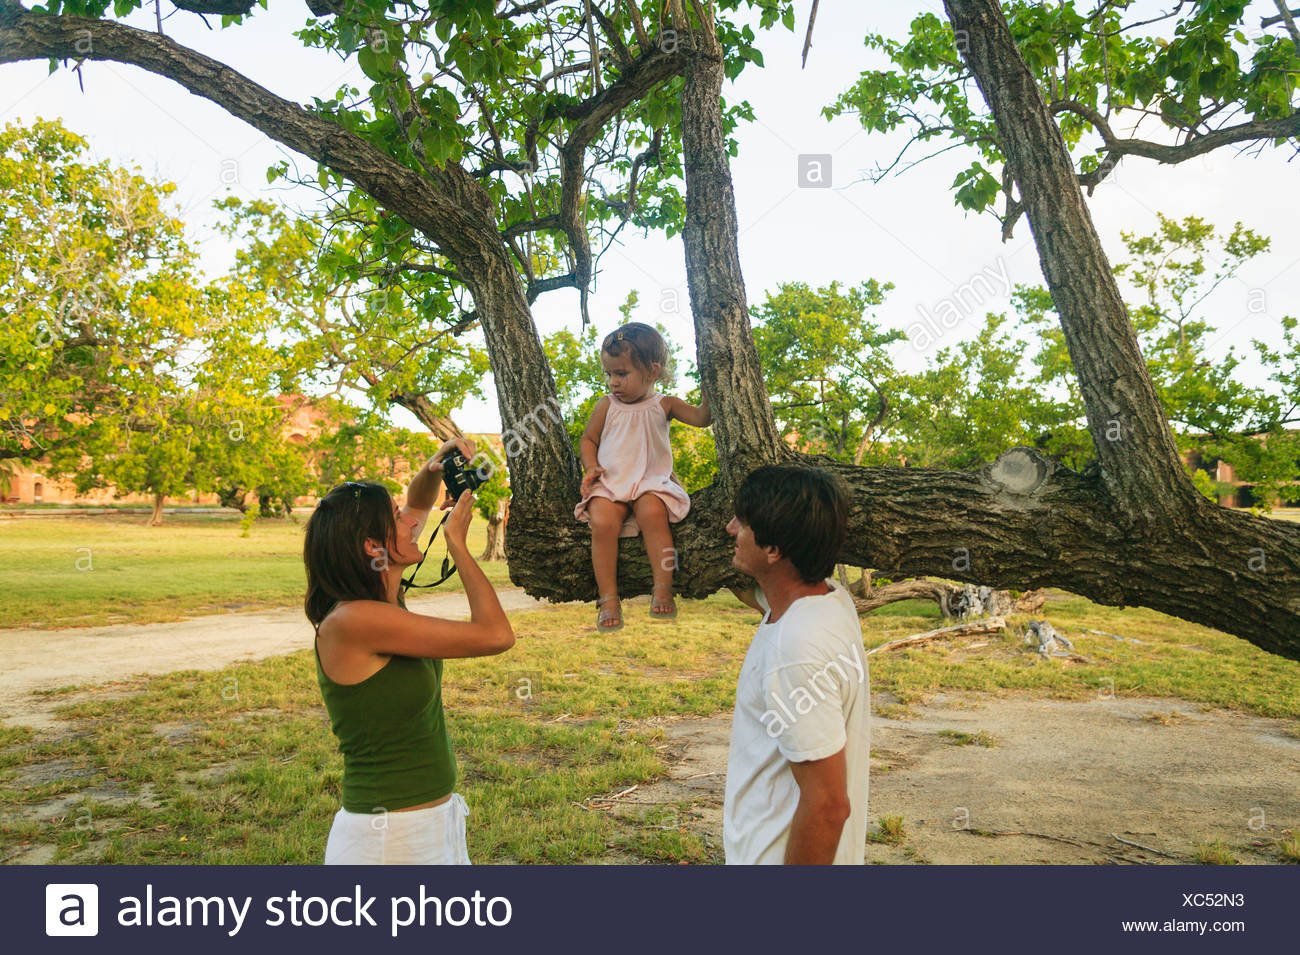 Family taking pictures in park - Stock Image